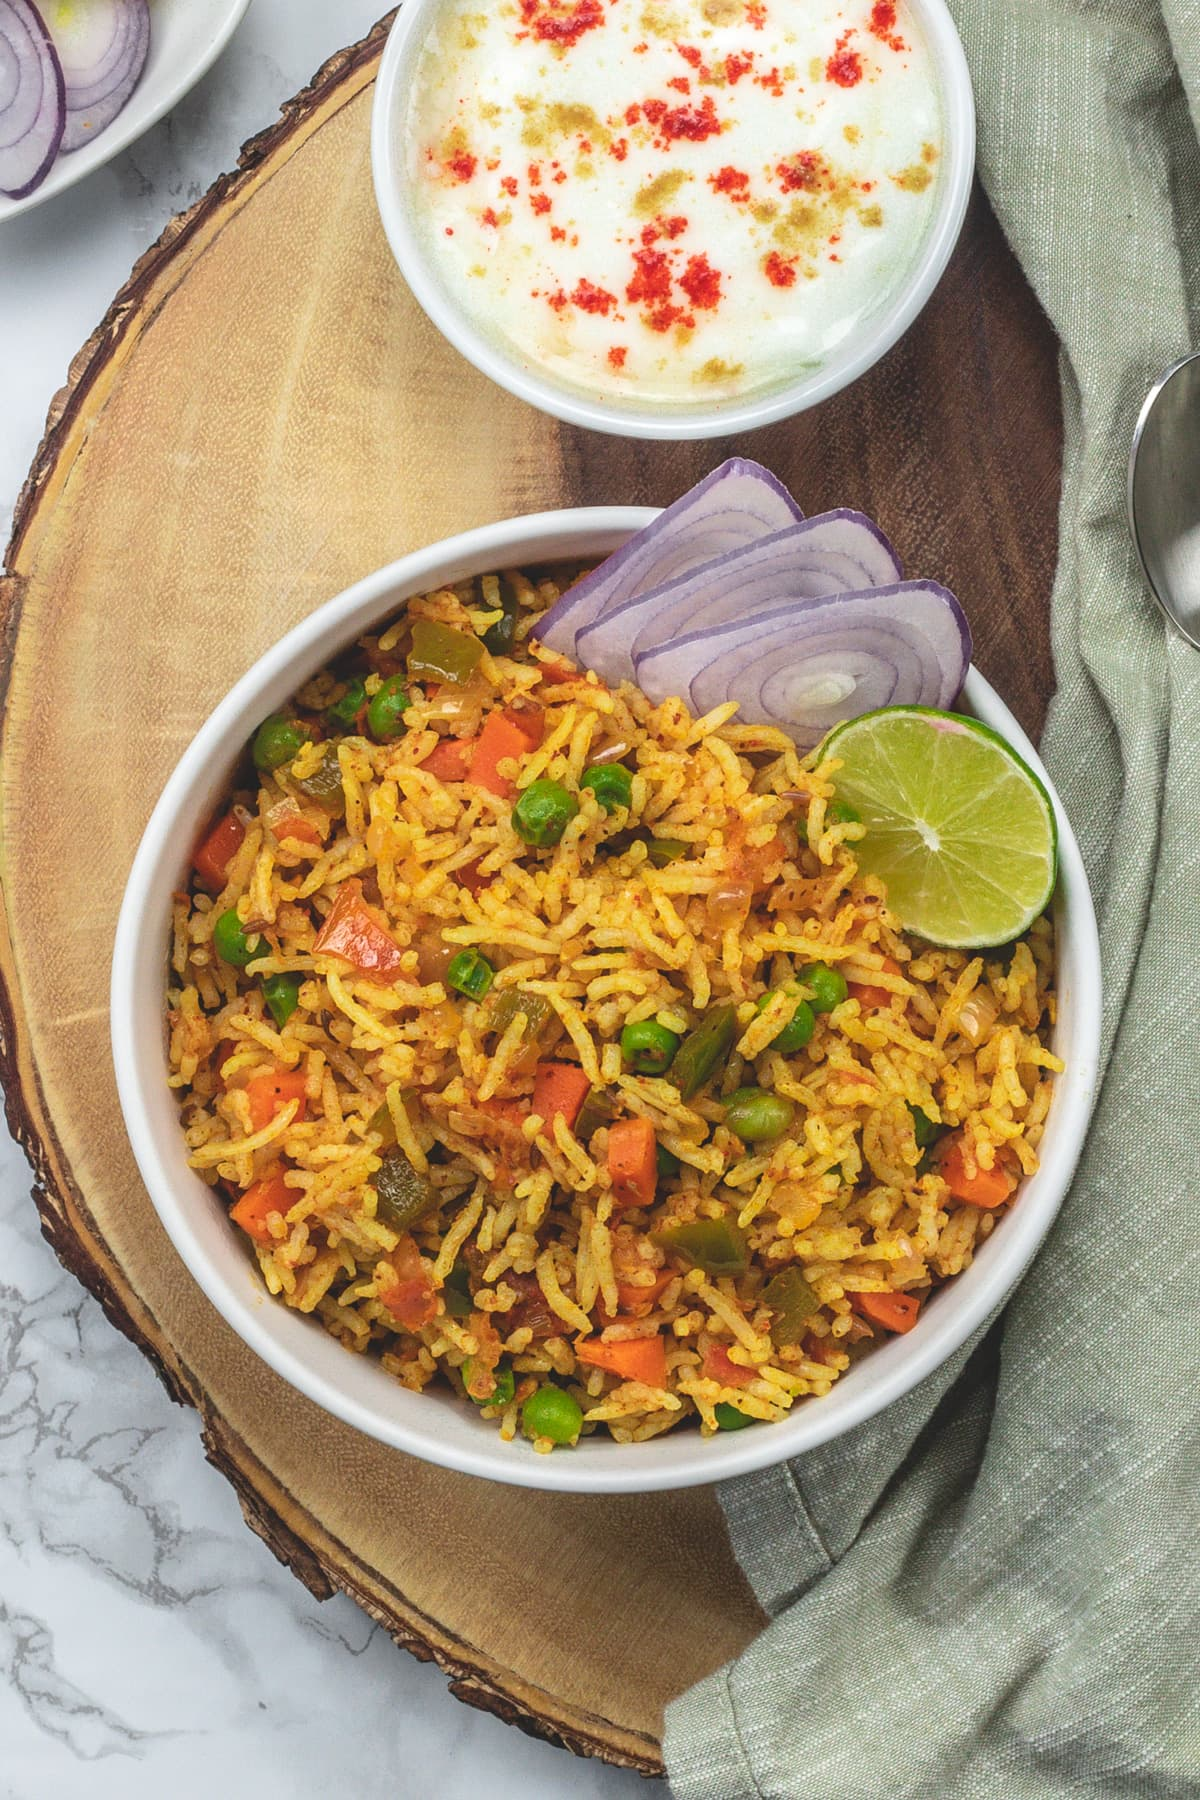 A bowl of tawa pulao garnished with onion slices, lime wedge and yogurt served on side.